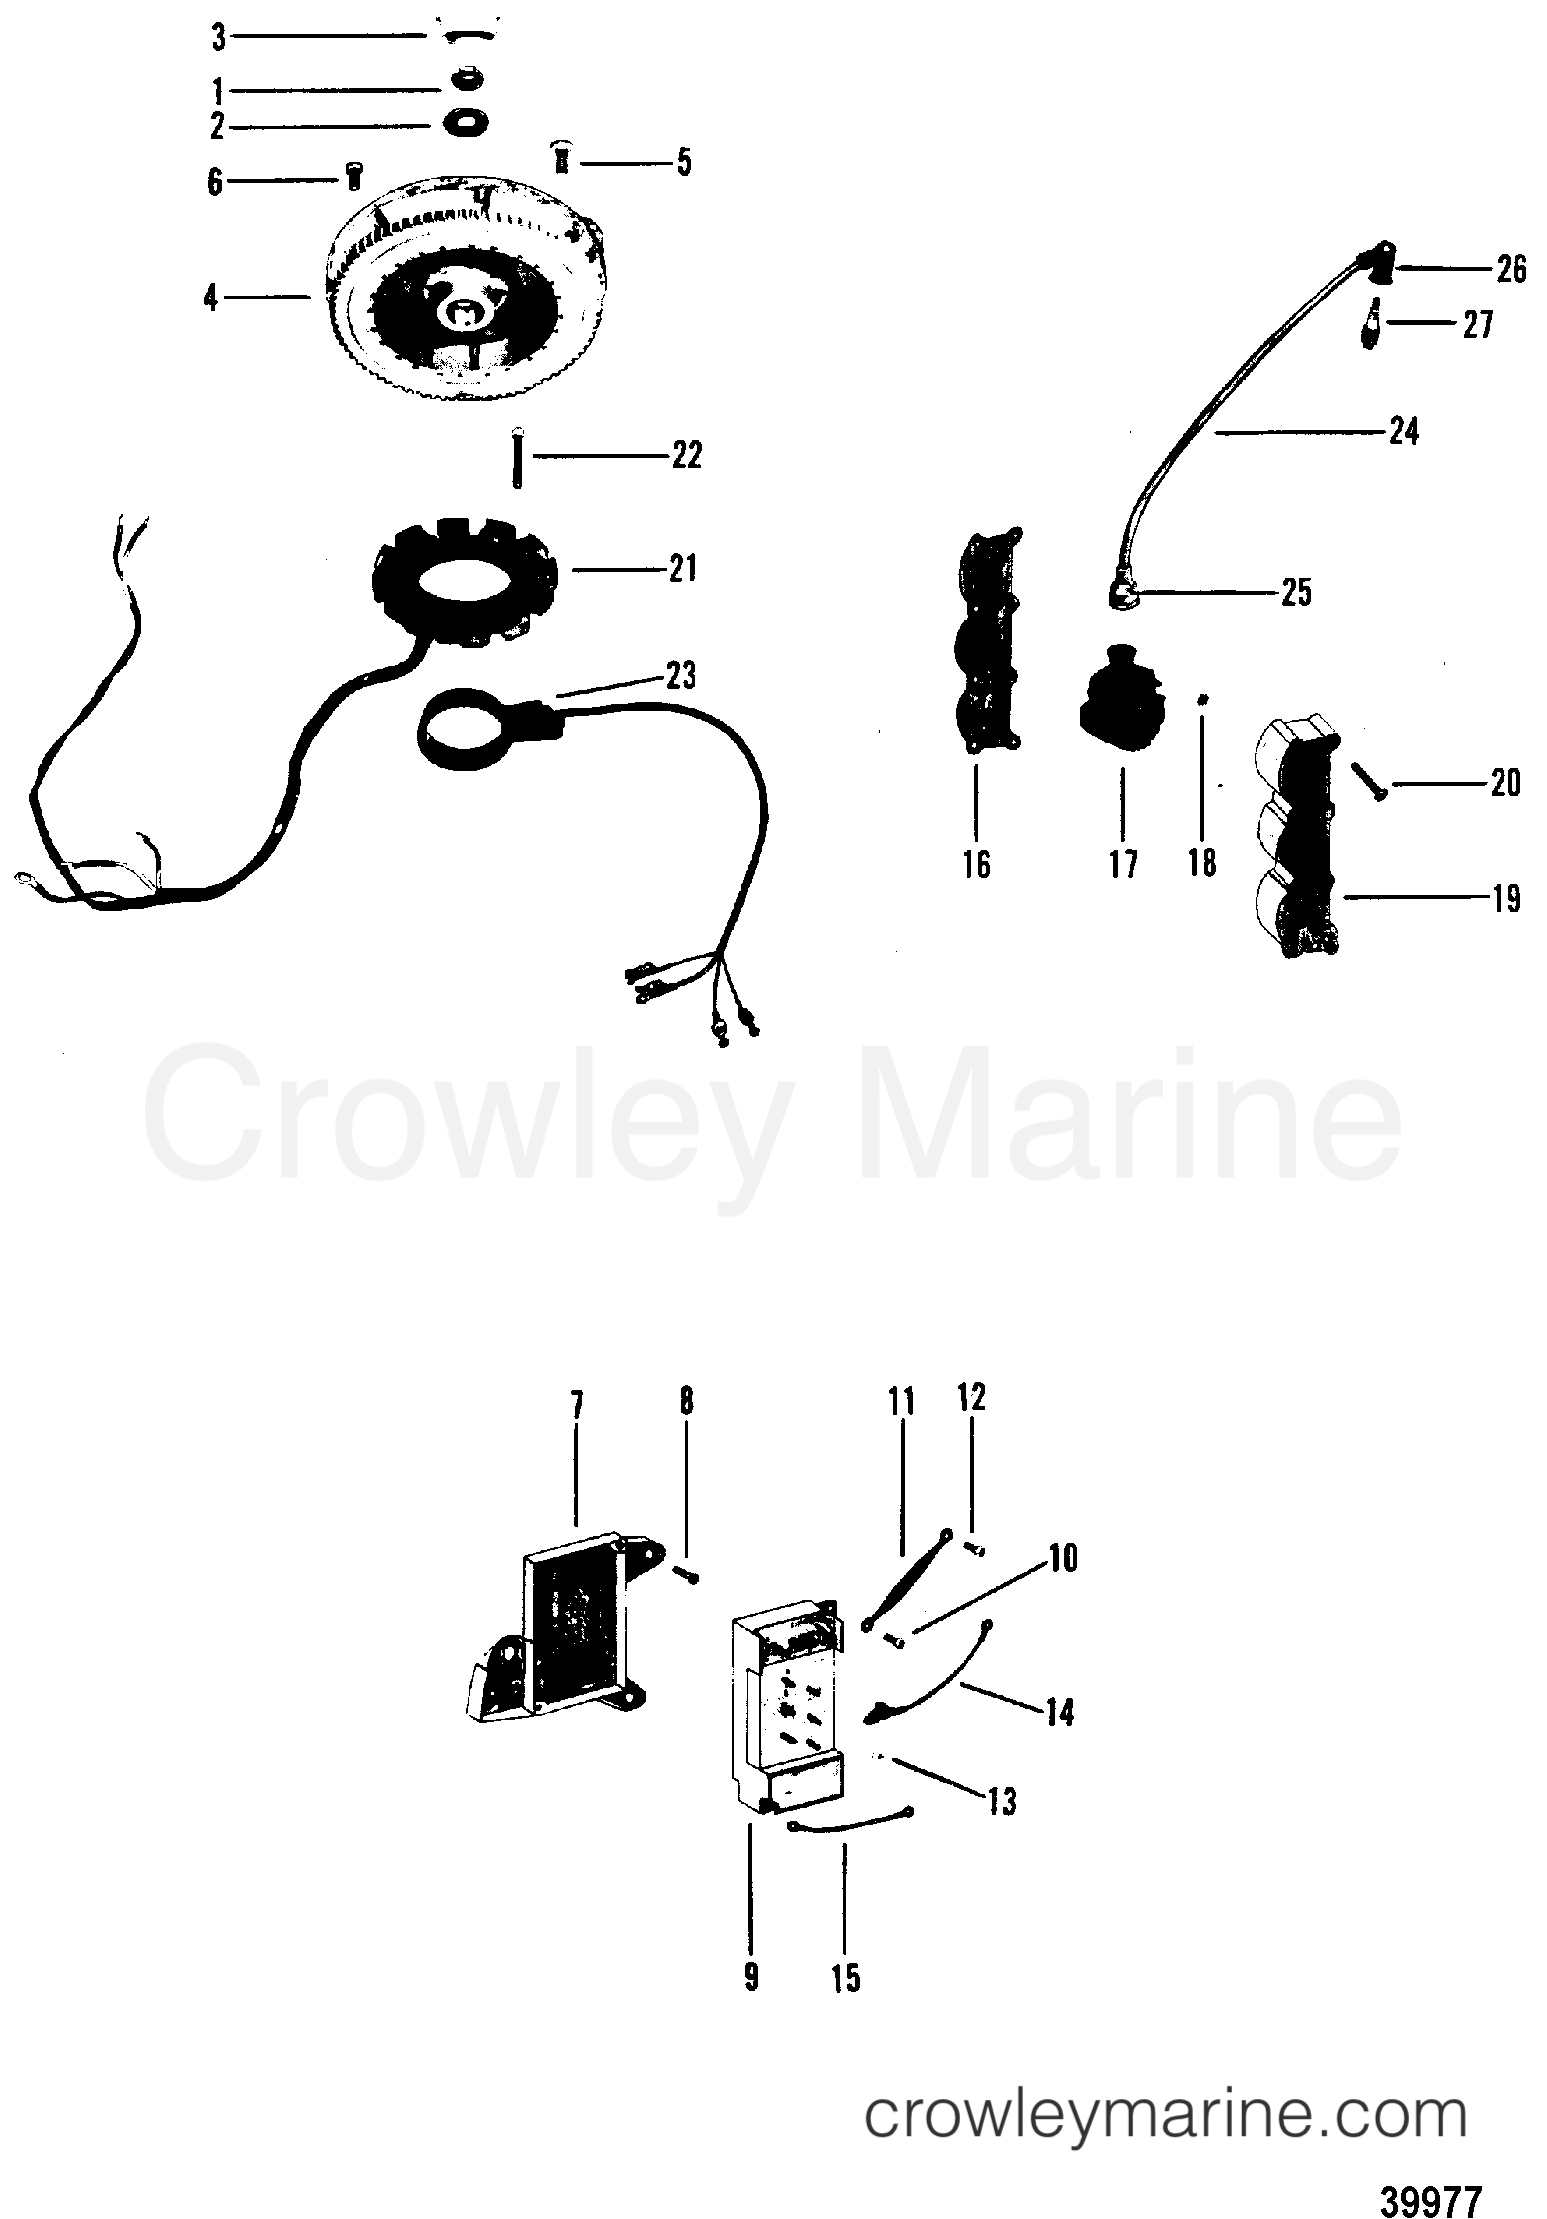 1980 Mercury Outboard 70 [ELPT] -  1070620 - FLYWHEEL, SWITCH BOX, IGNITION COIL, STATOR section